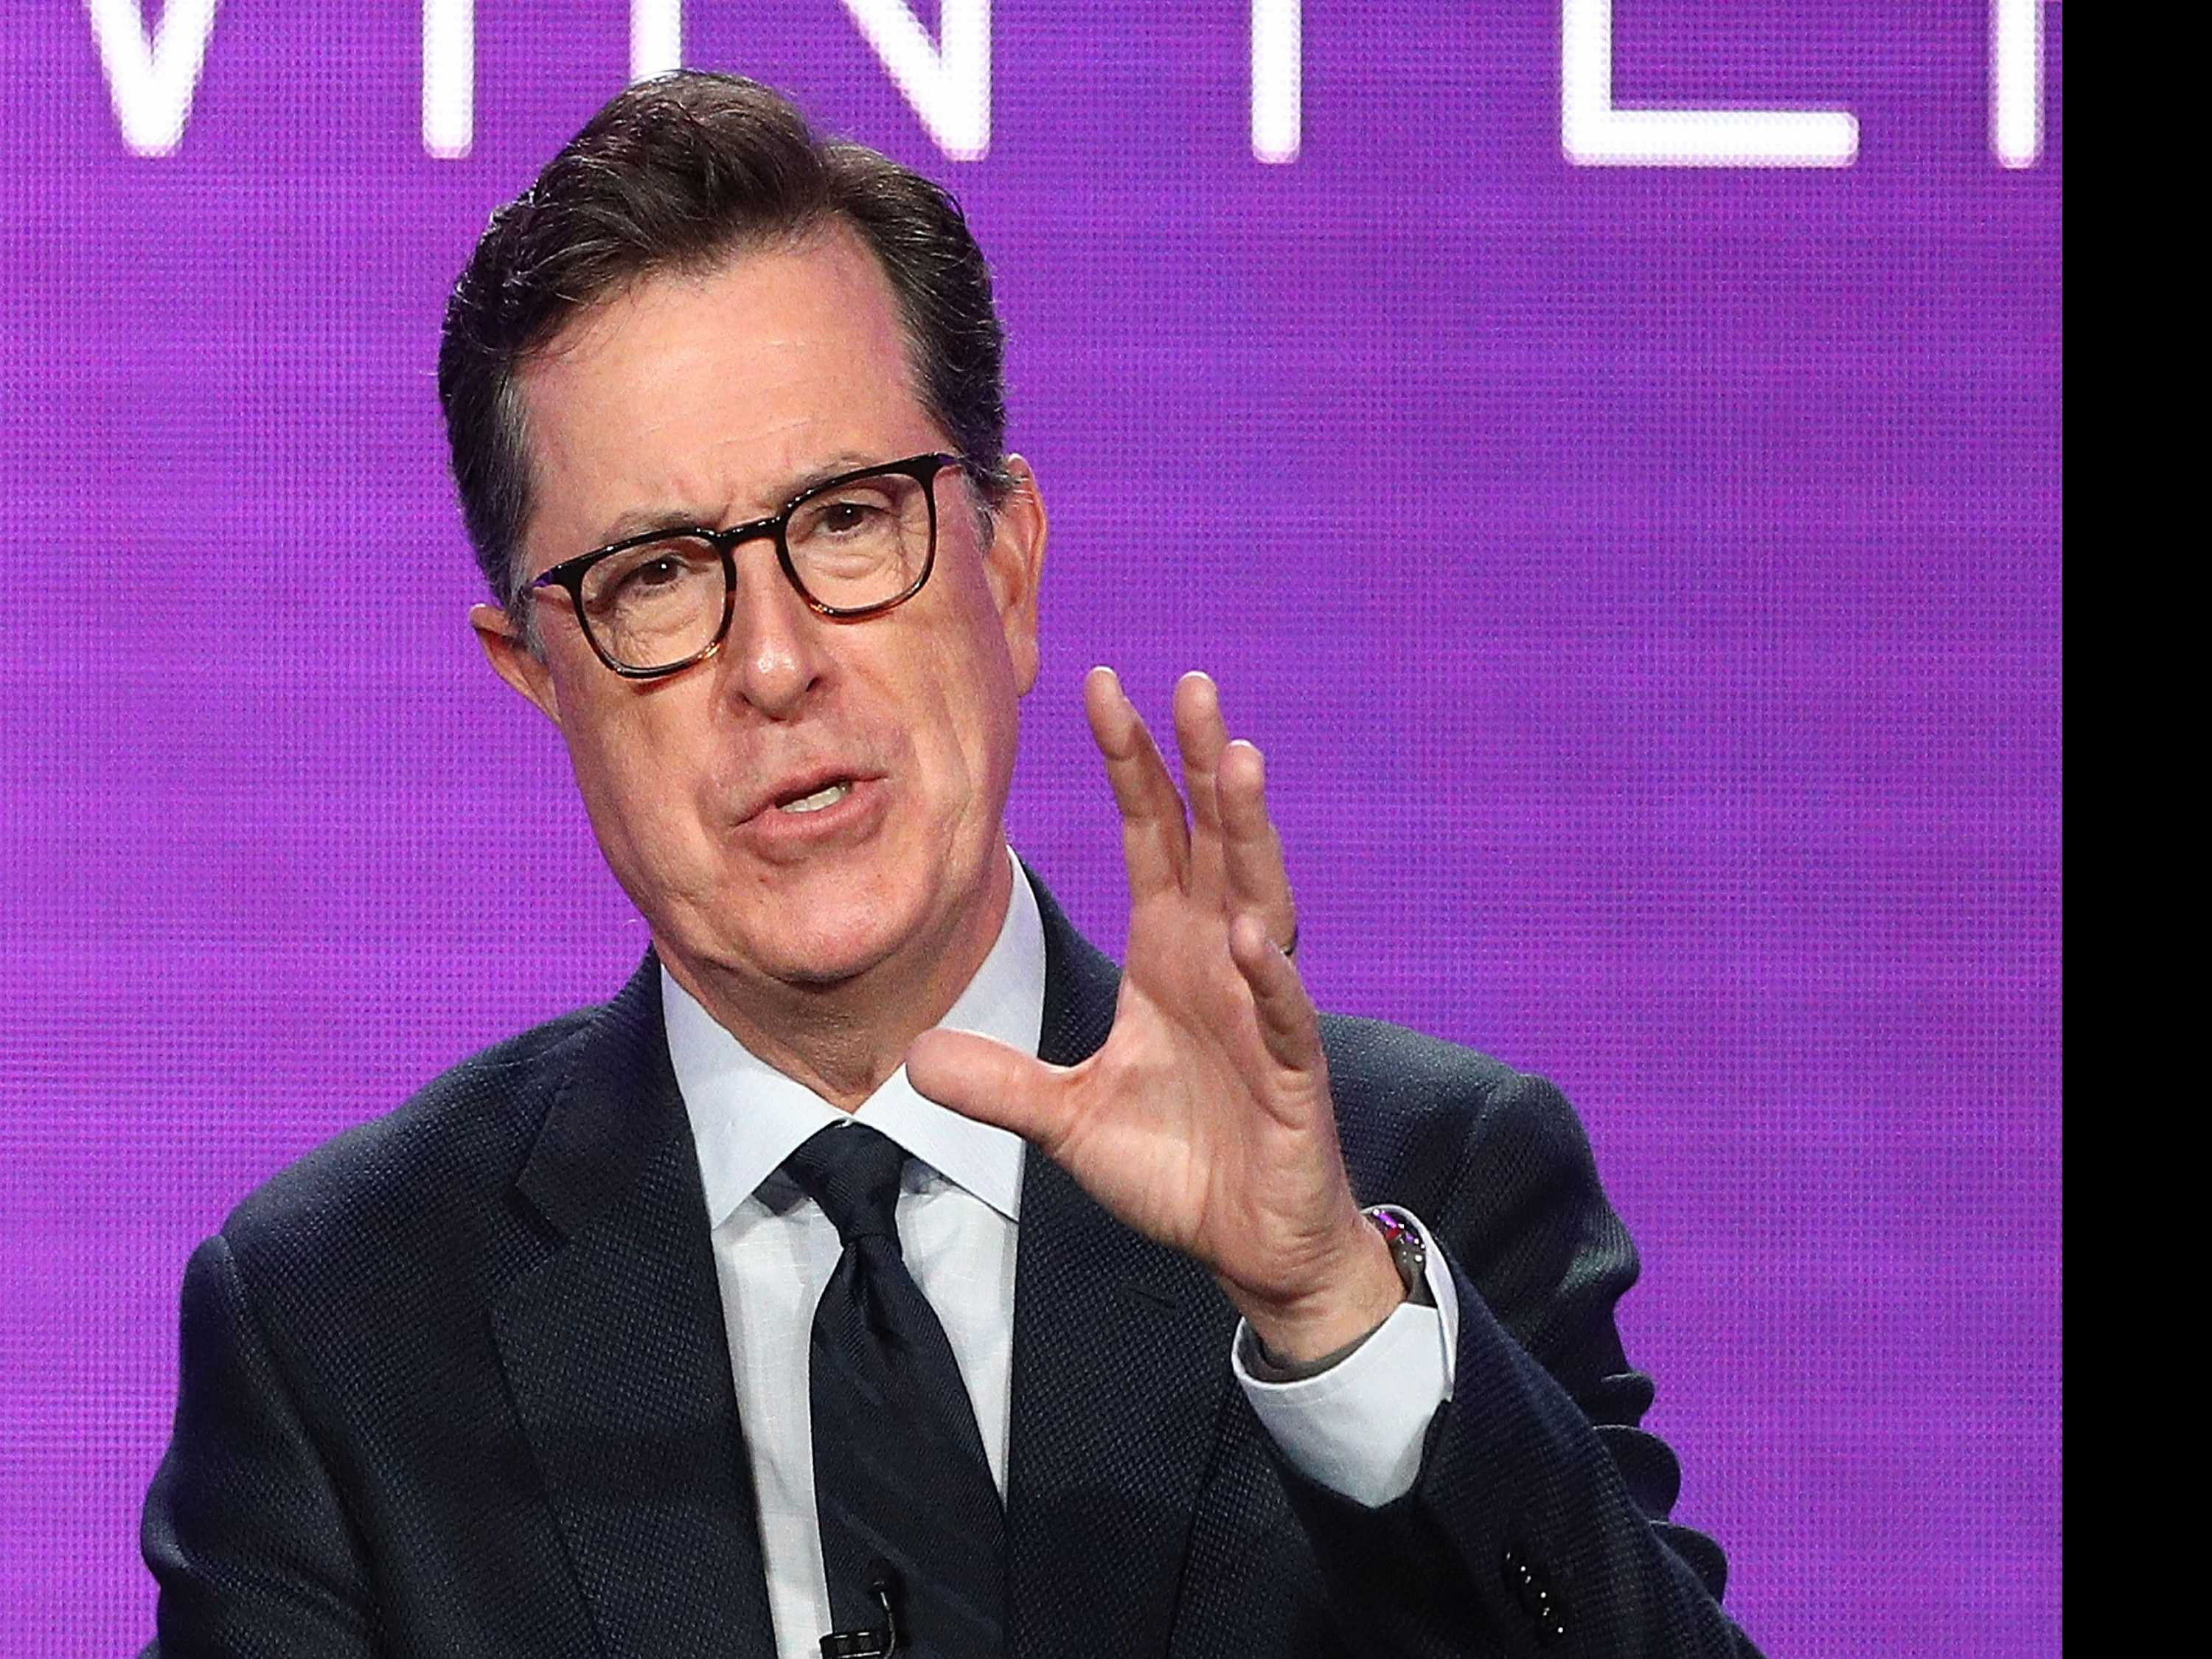 No Such Thing as Trump Fatigue for Stephen Colbert